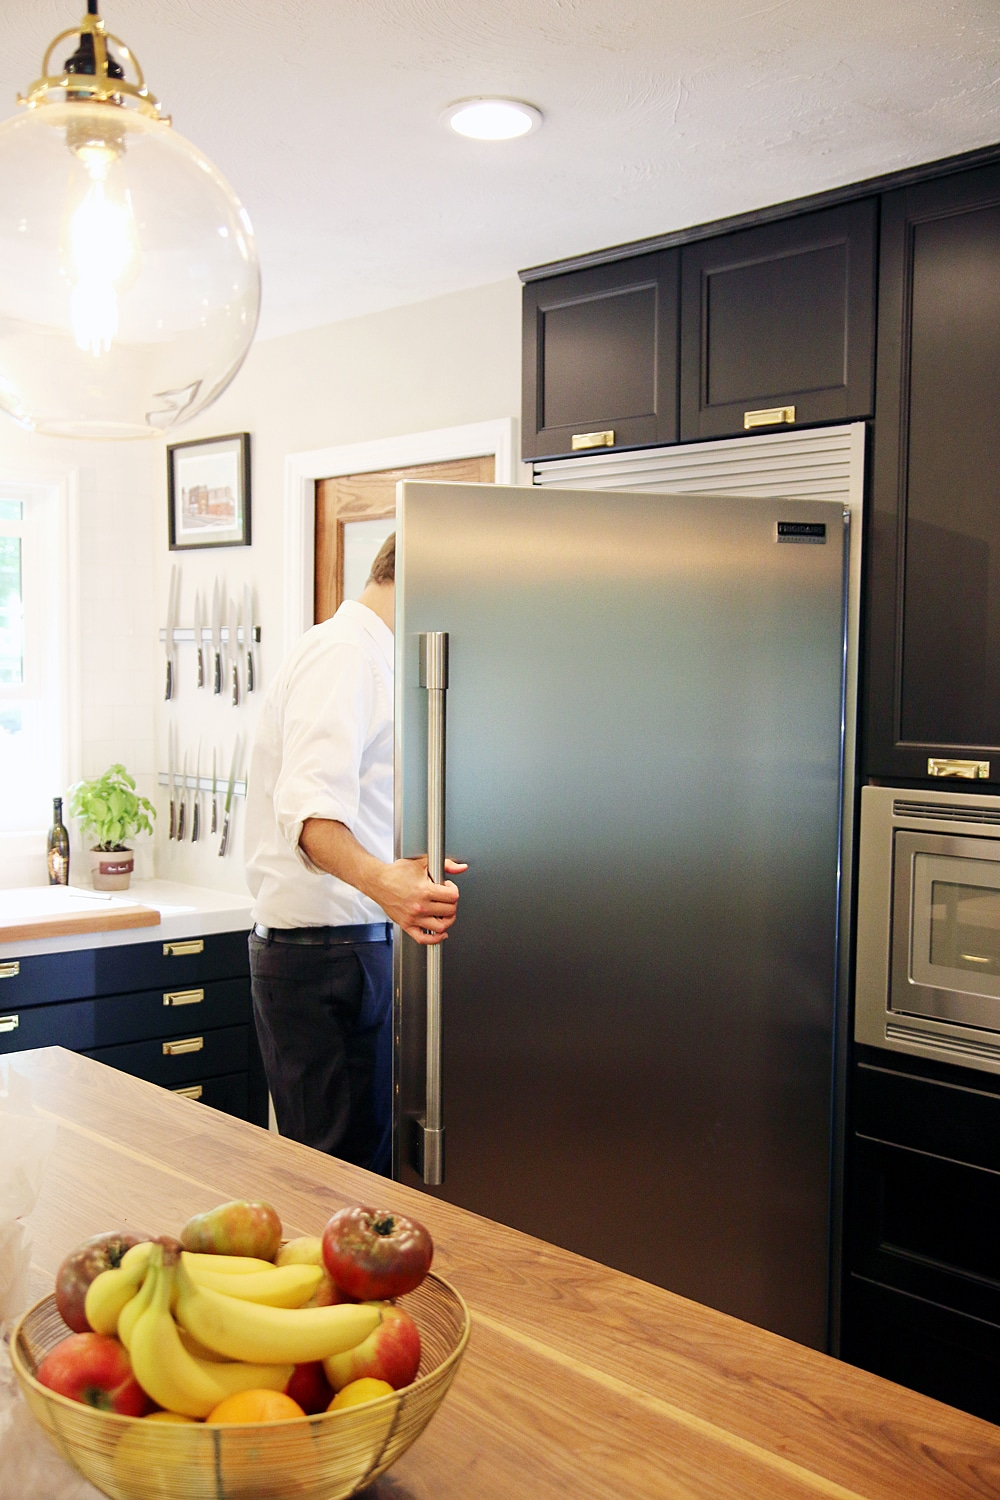 The Entire Frigidaire Professional Collection Is Smudge Proof Which So Practical For Our Family With Small Children It S Probably My Favorite Part